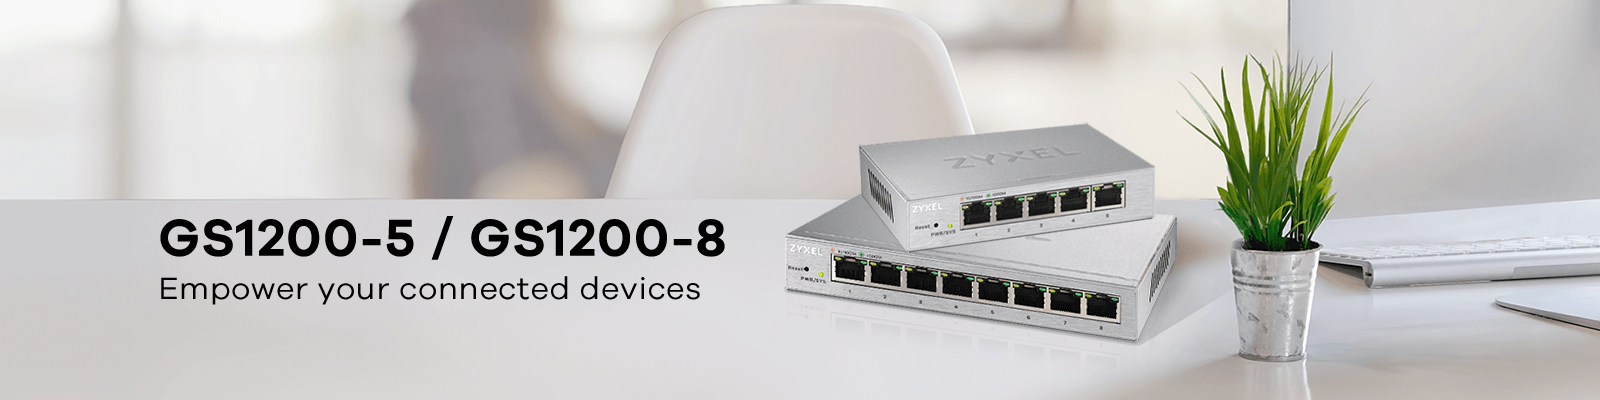 GS1200-5 / GS1200-8, Empower Your Connected Devices